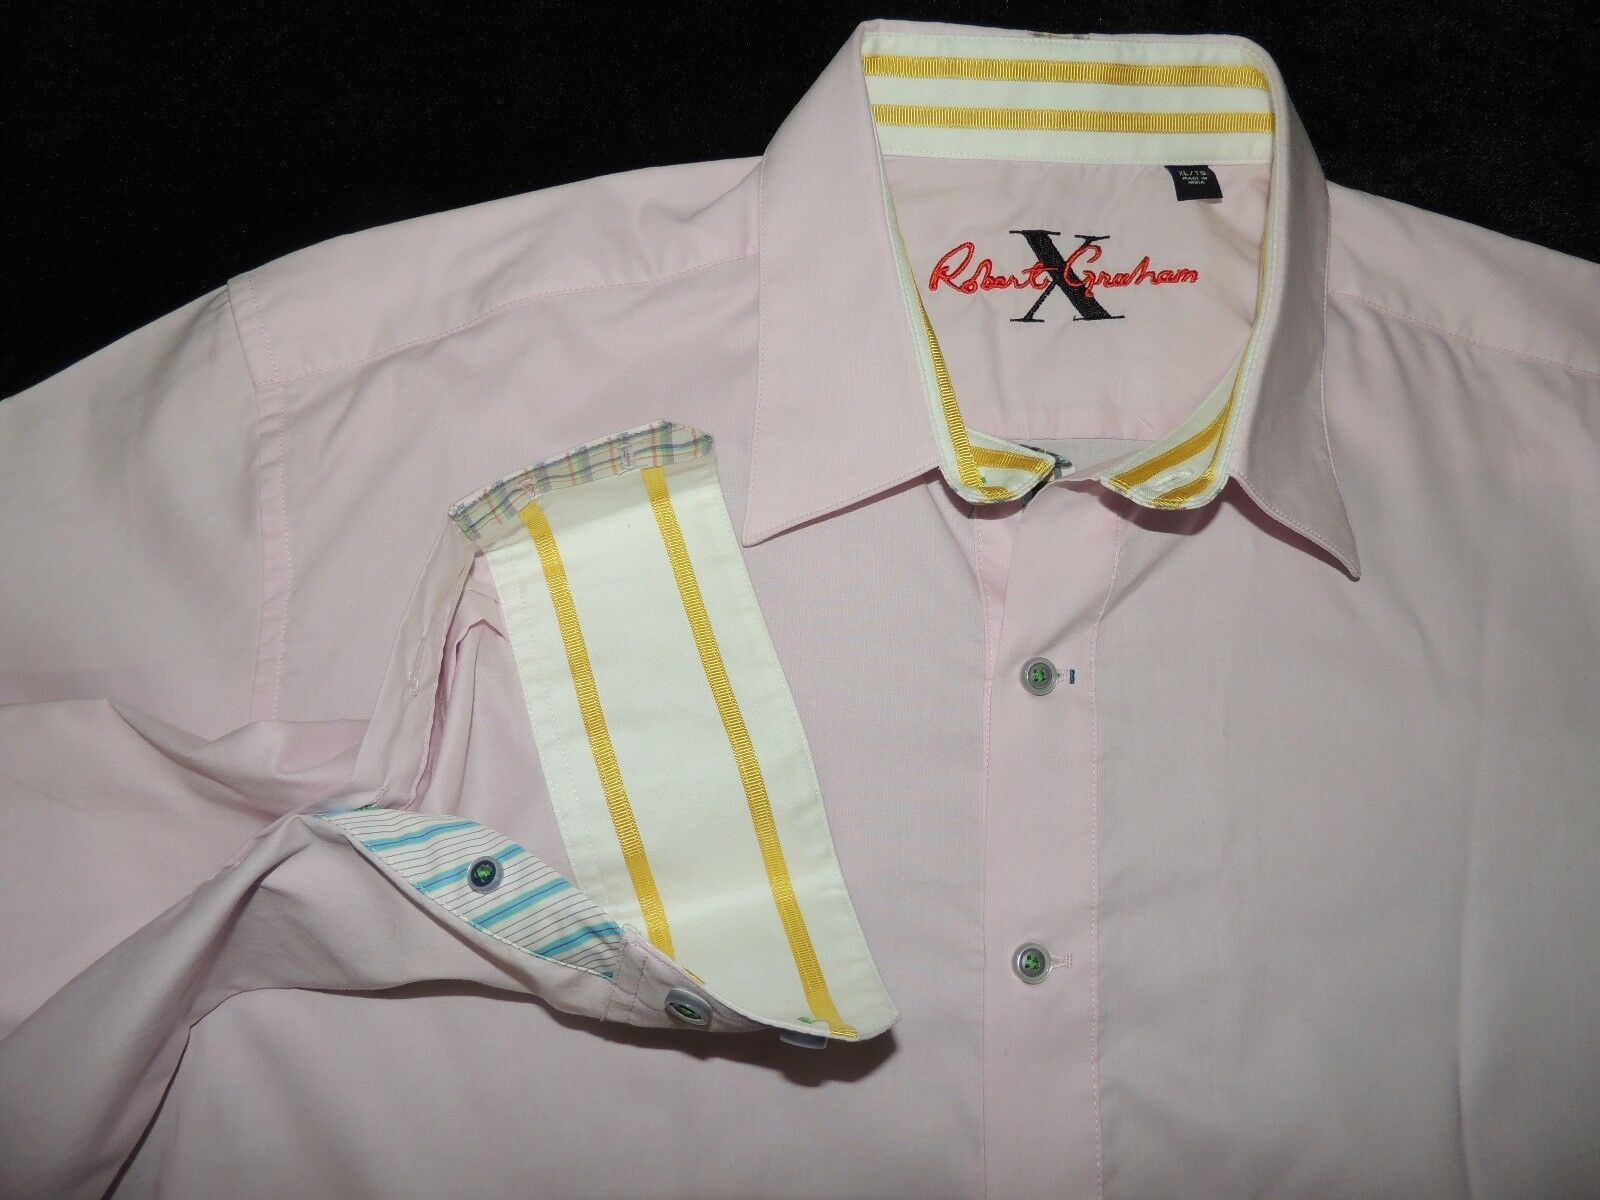 Robert Graham men's 100% cotton solid Pink Shirt size XL